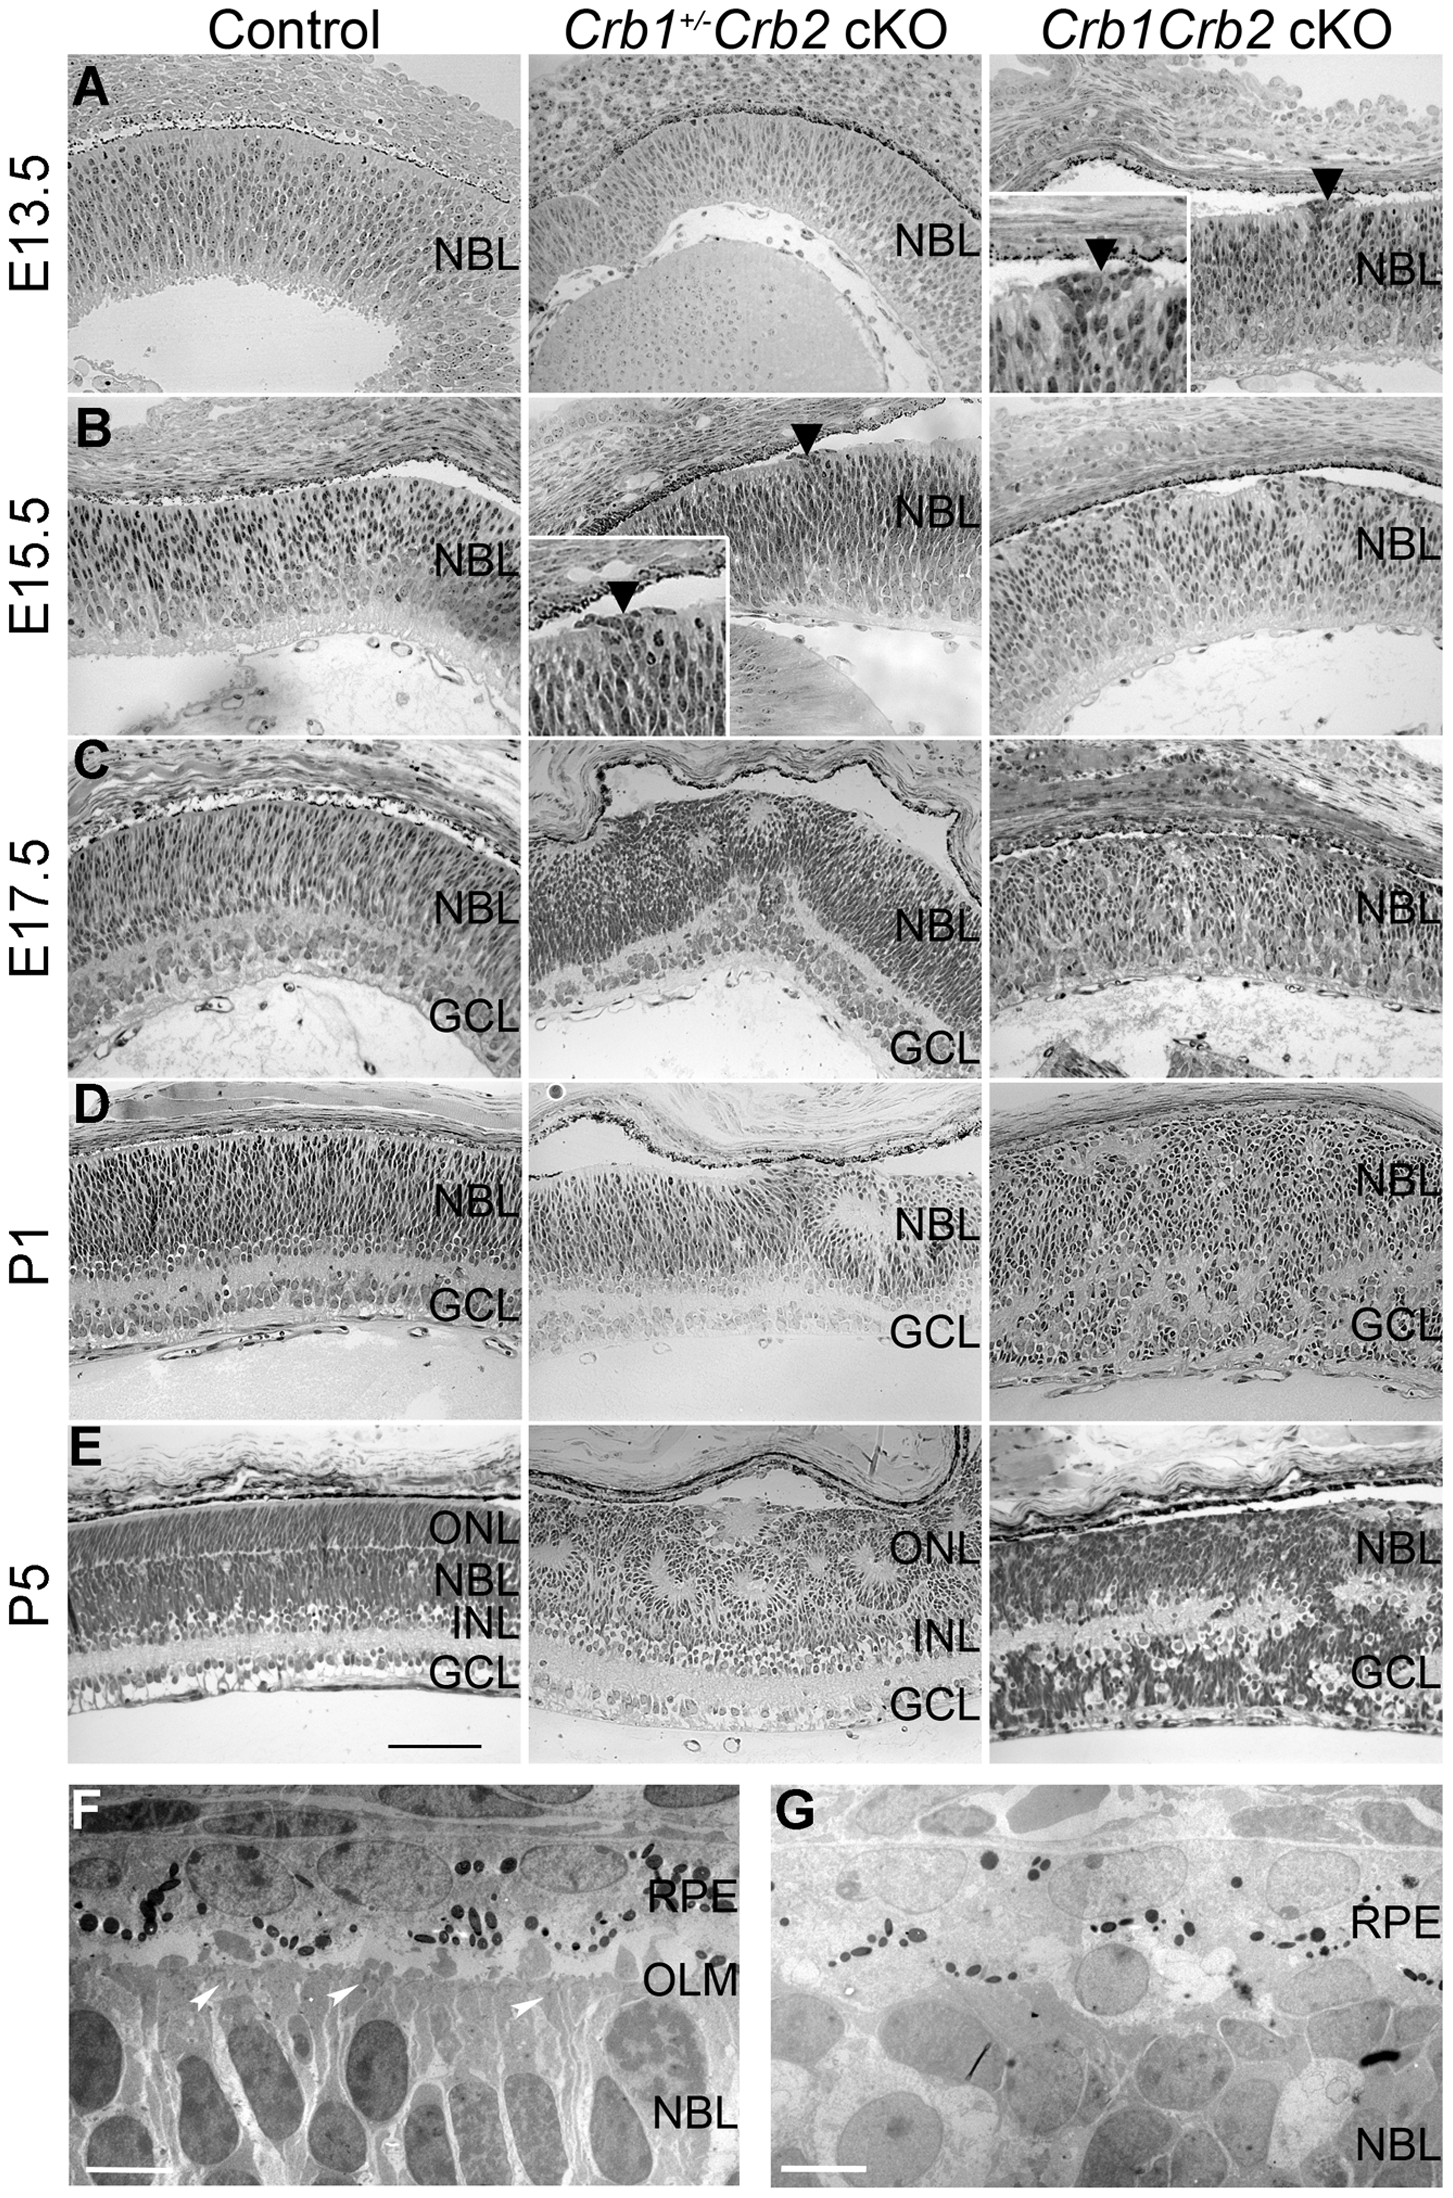 Retinal development is impaired in <i>Crb1Crb2</i> cKO.